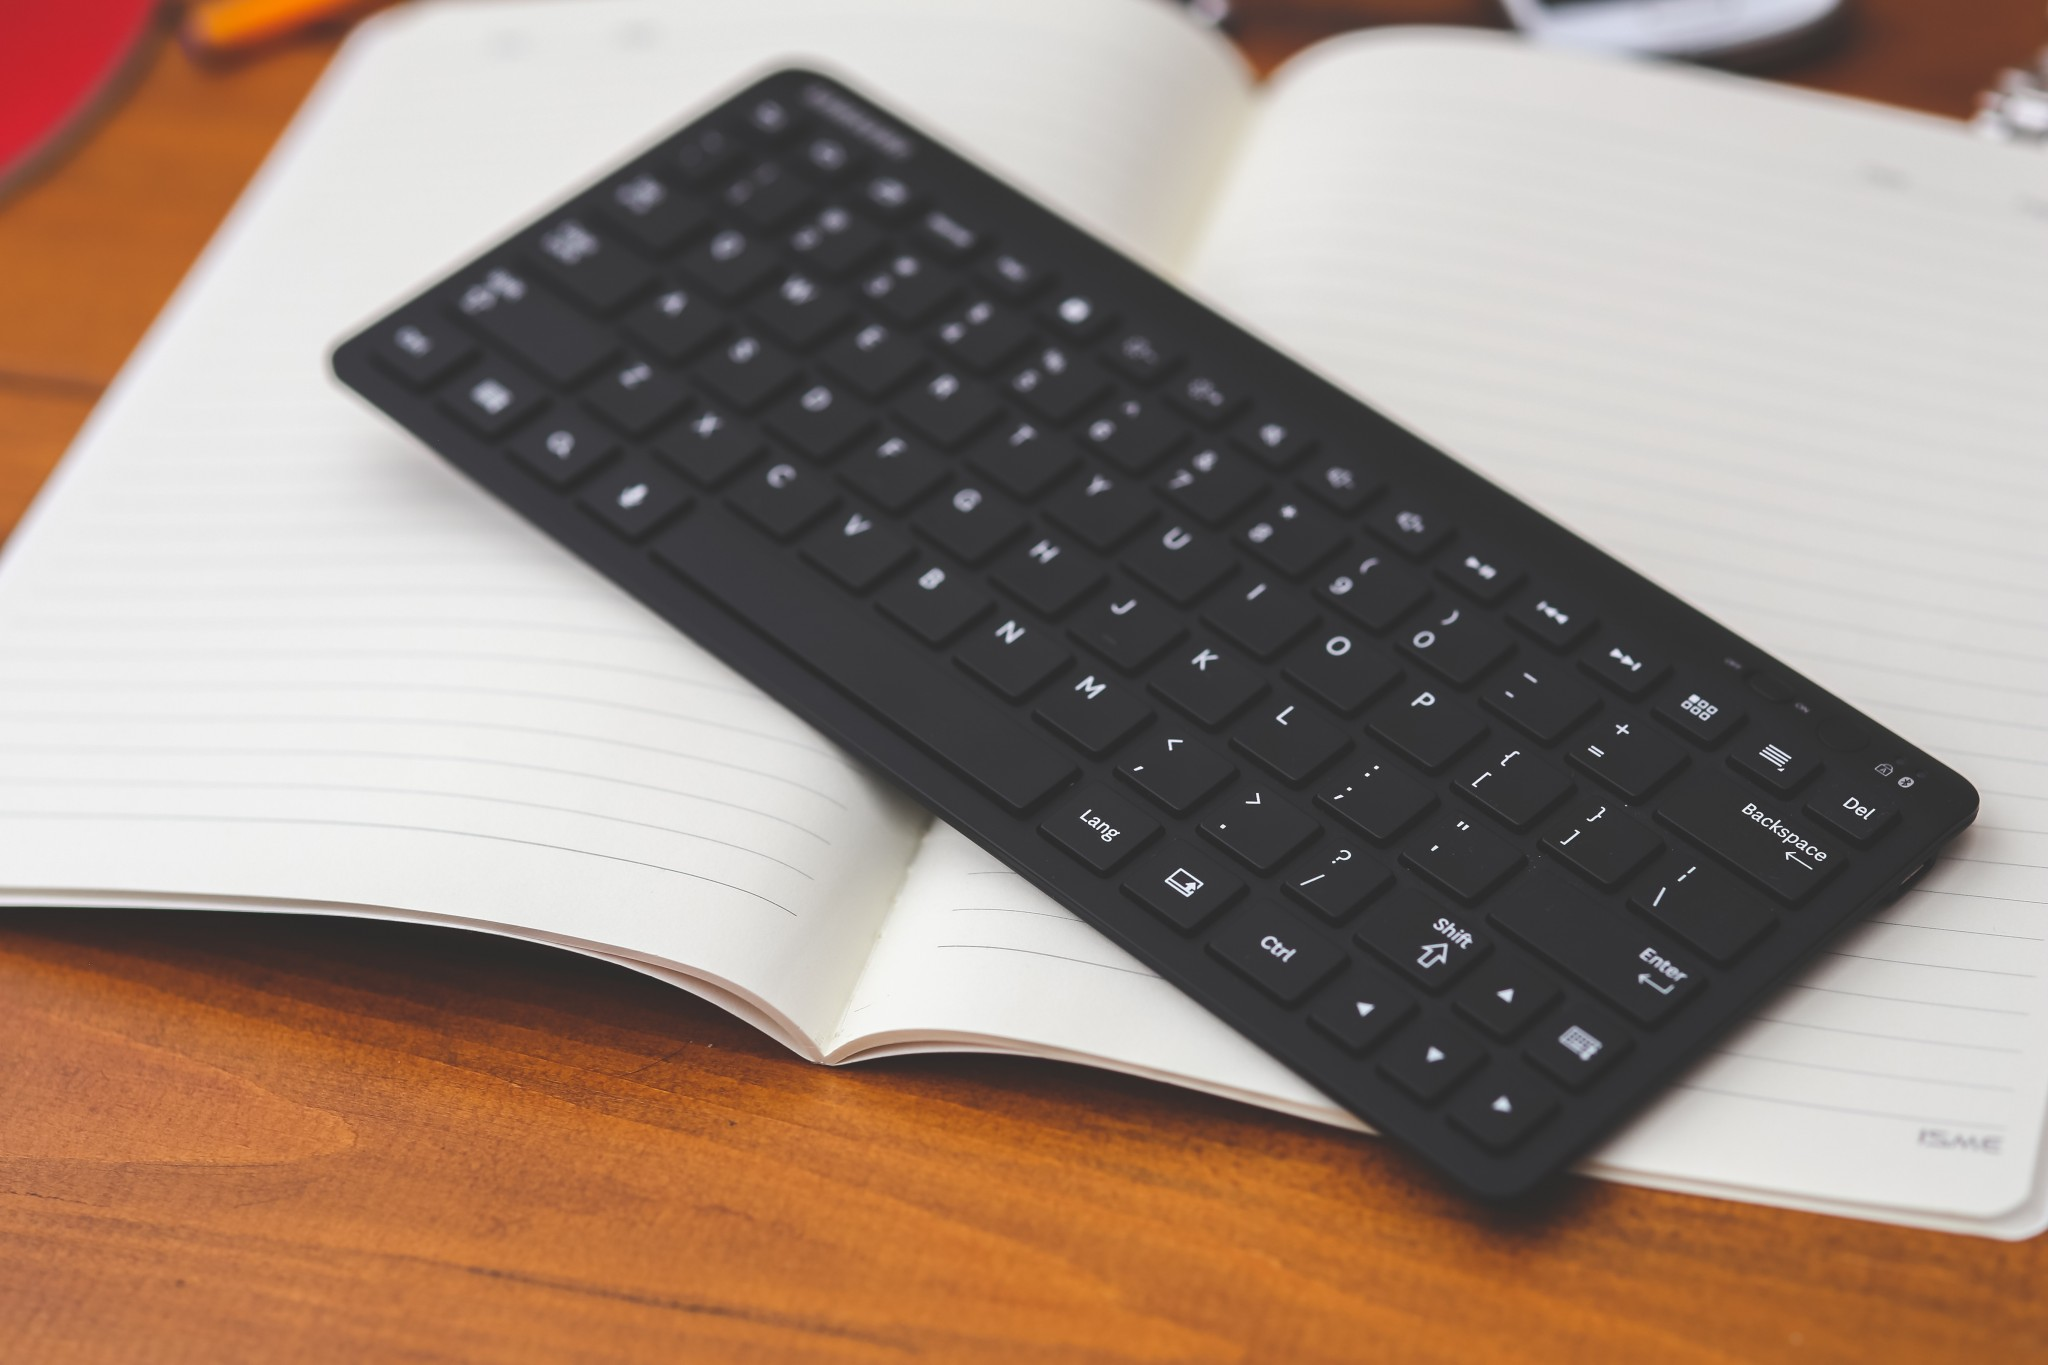 Unencrypted wireless keyboard strokes can be intercepted